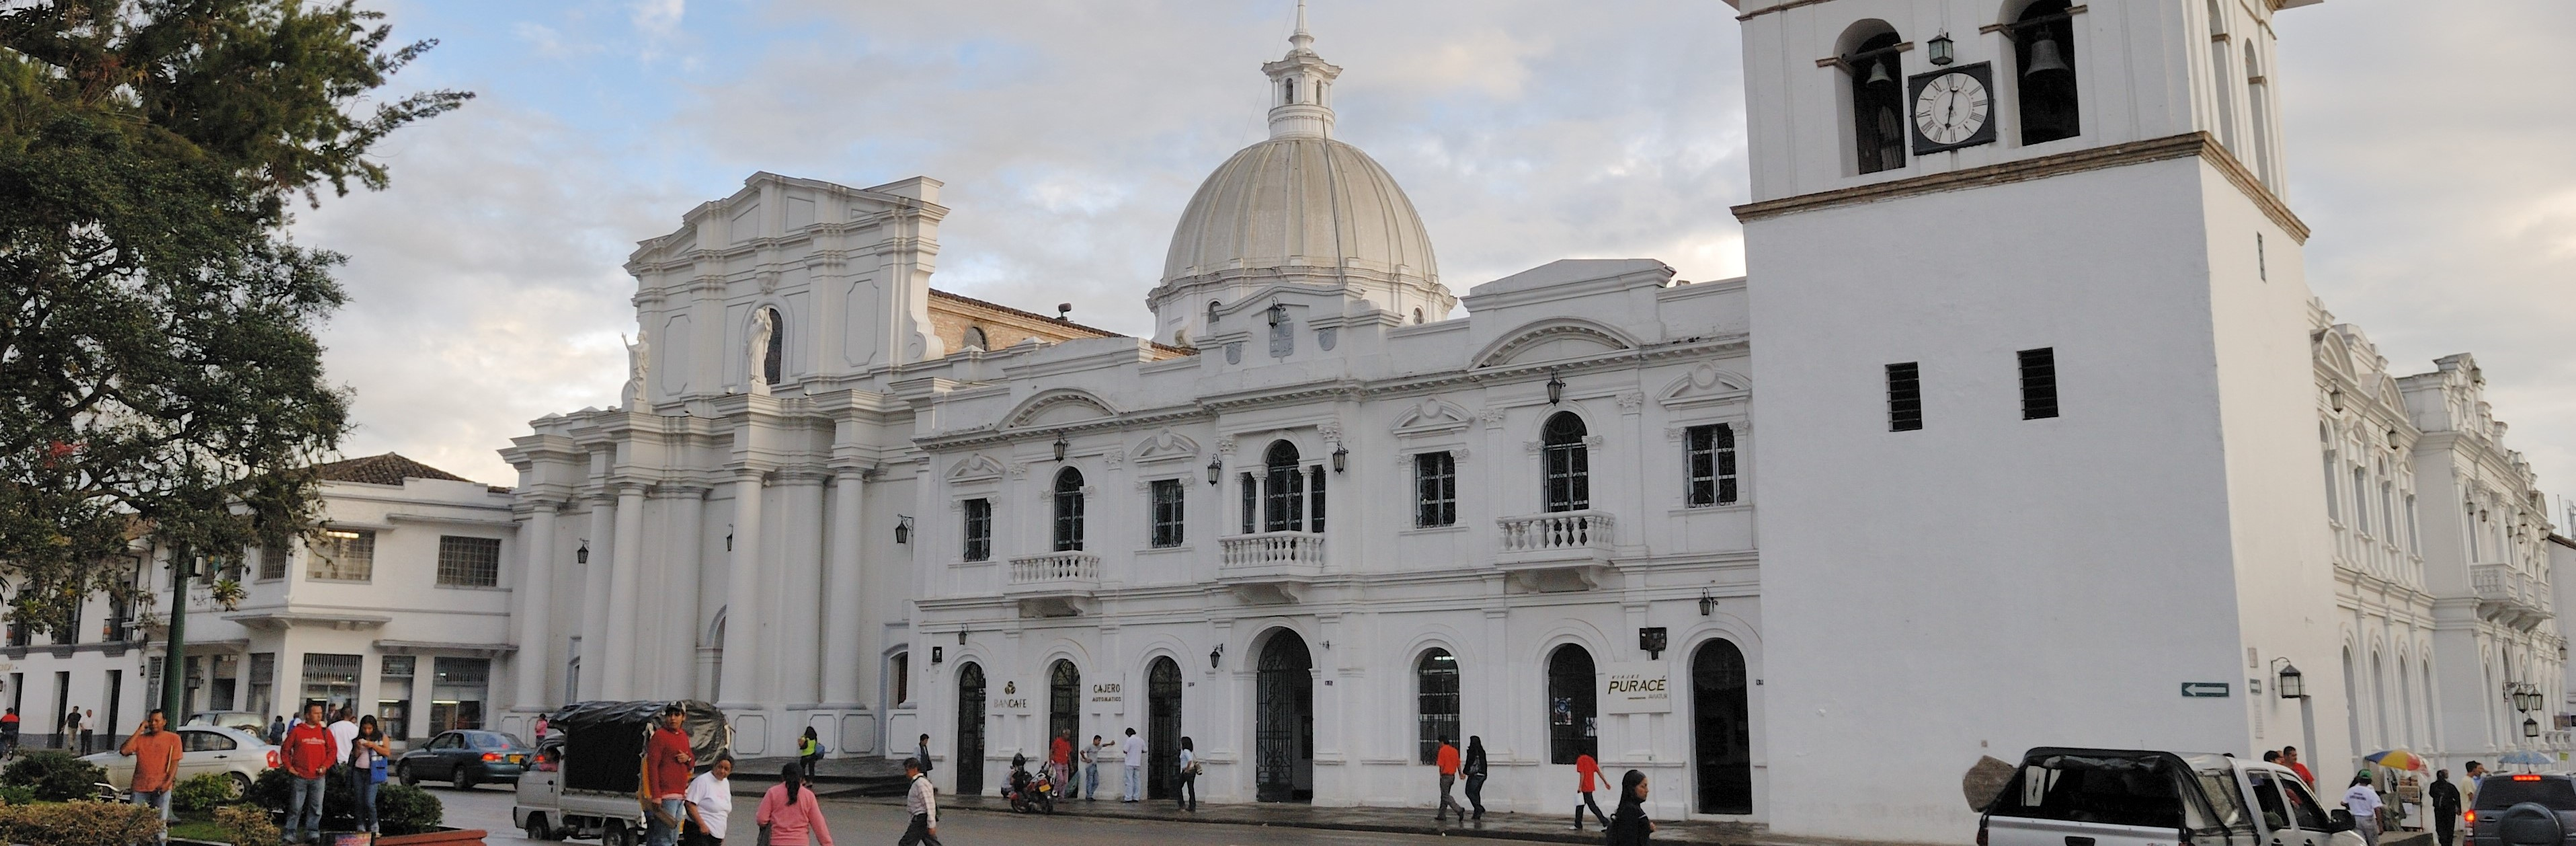 https://www.kontour-travel.com/wp-content/uploads/popayan-colombia-002..jpg